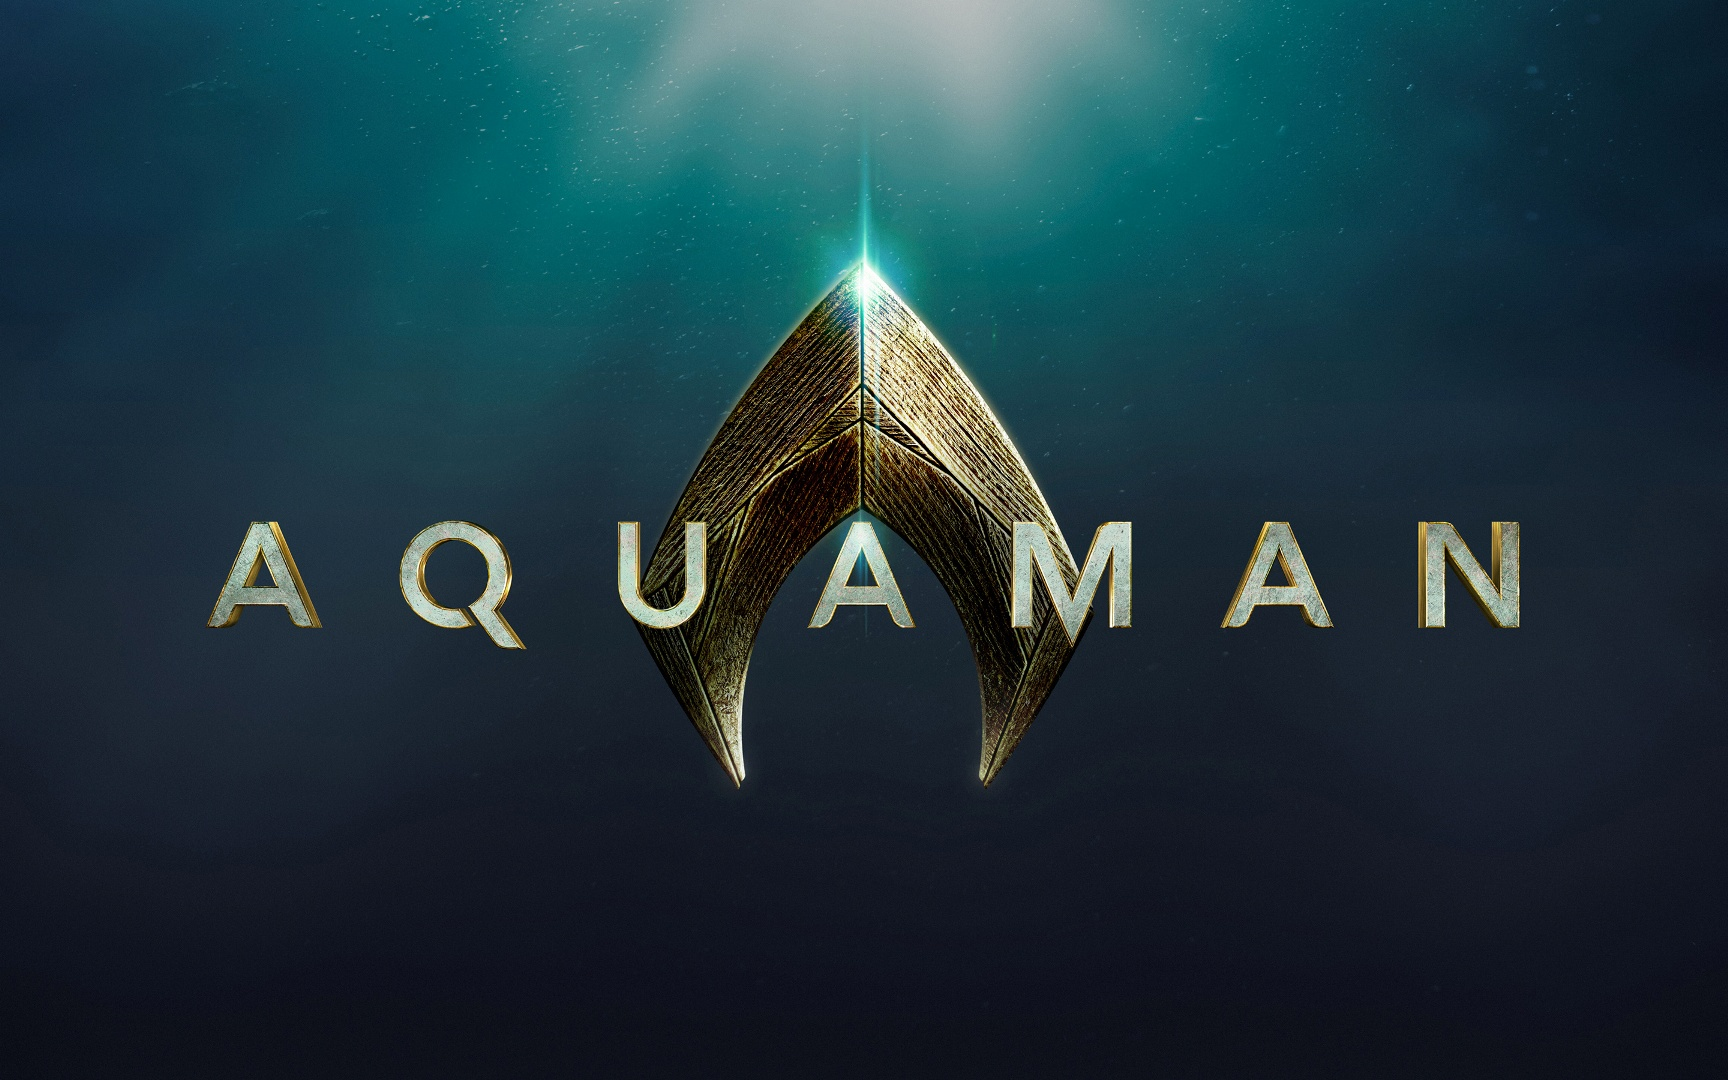 aquaman 2018 movie wallpaper What Movies to Expect in 2018